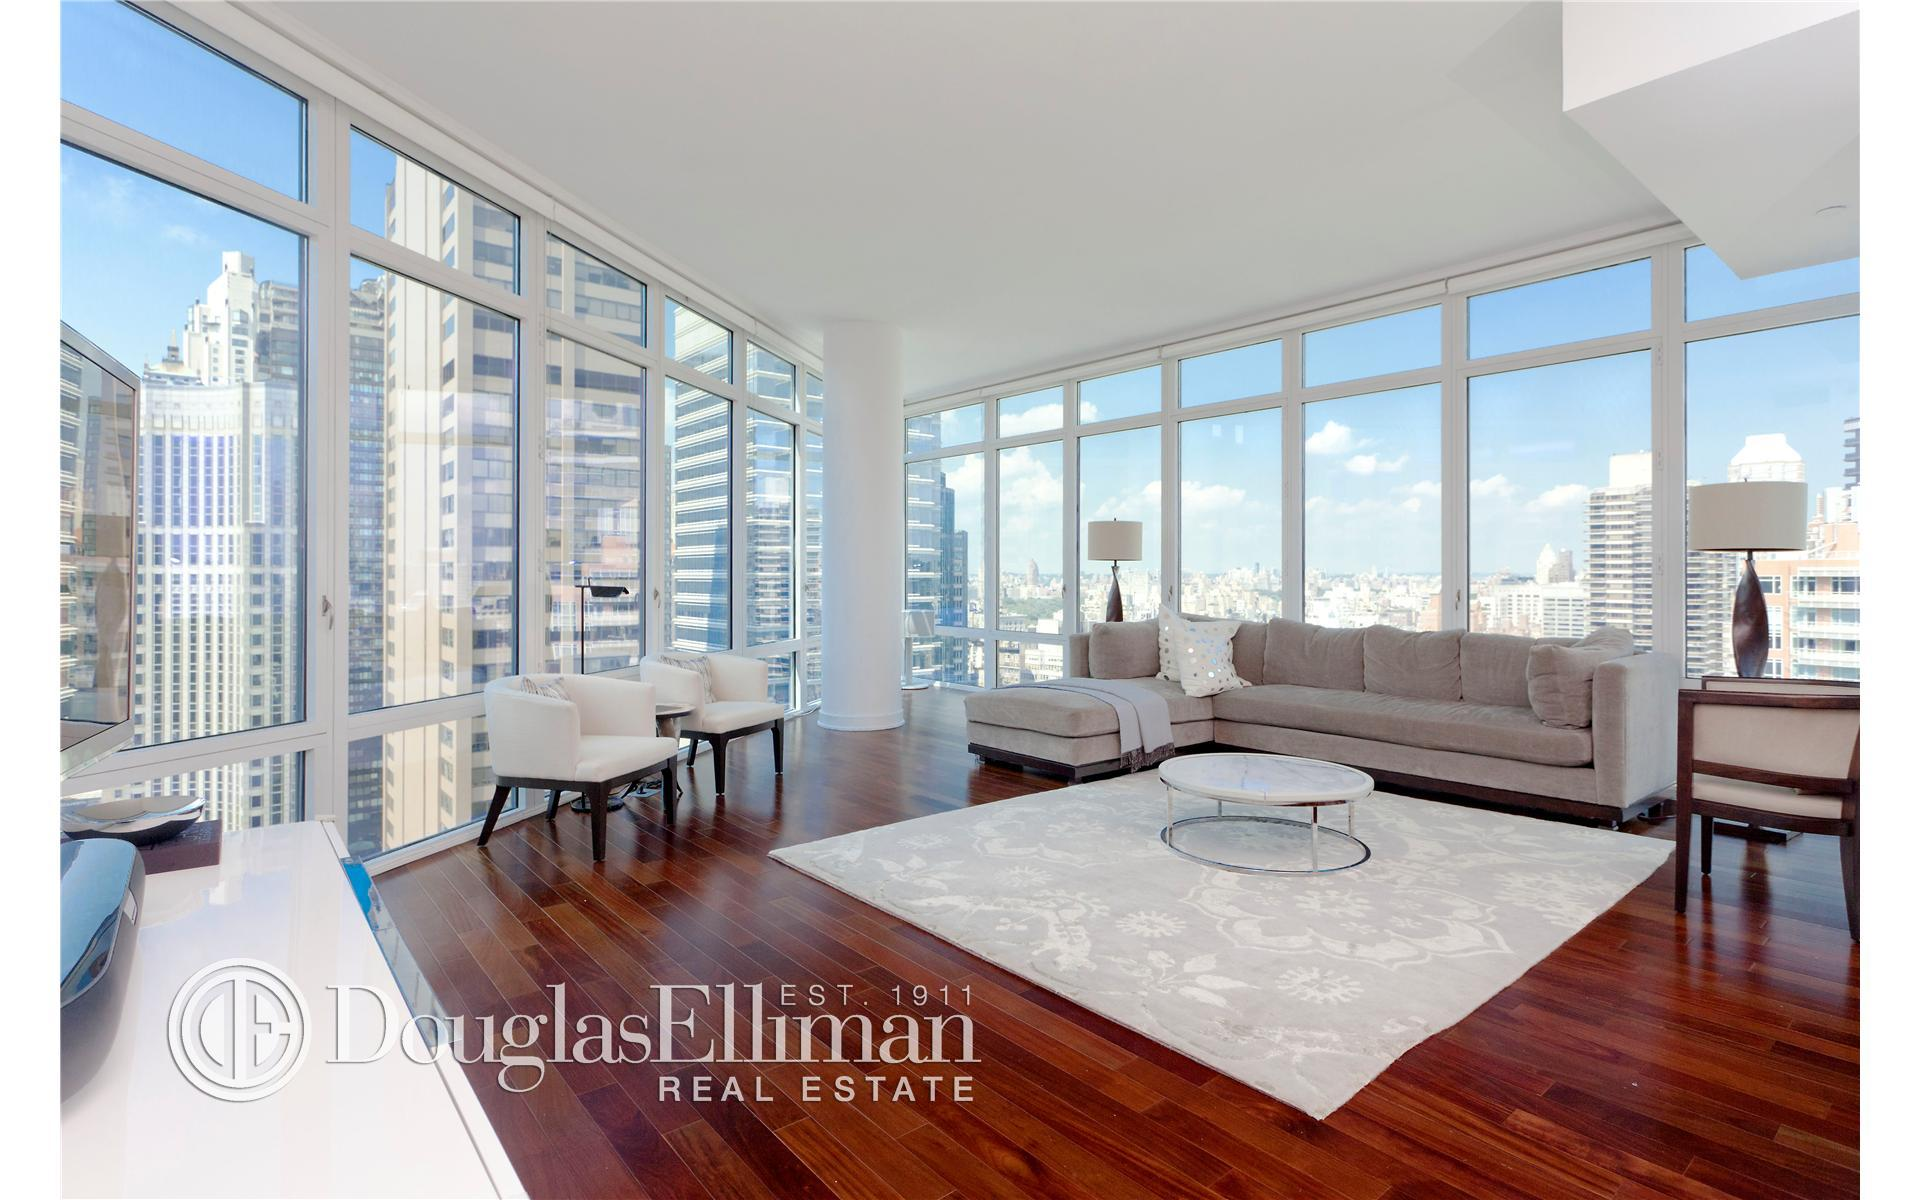 Condominium for Sale at Place 57, Place 57, 207 East 57th Street New York, New York 10022 United States